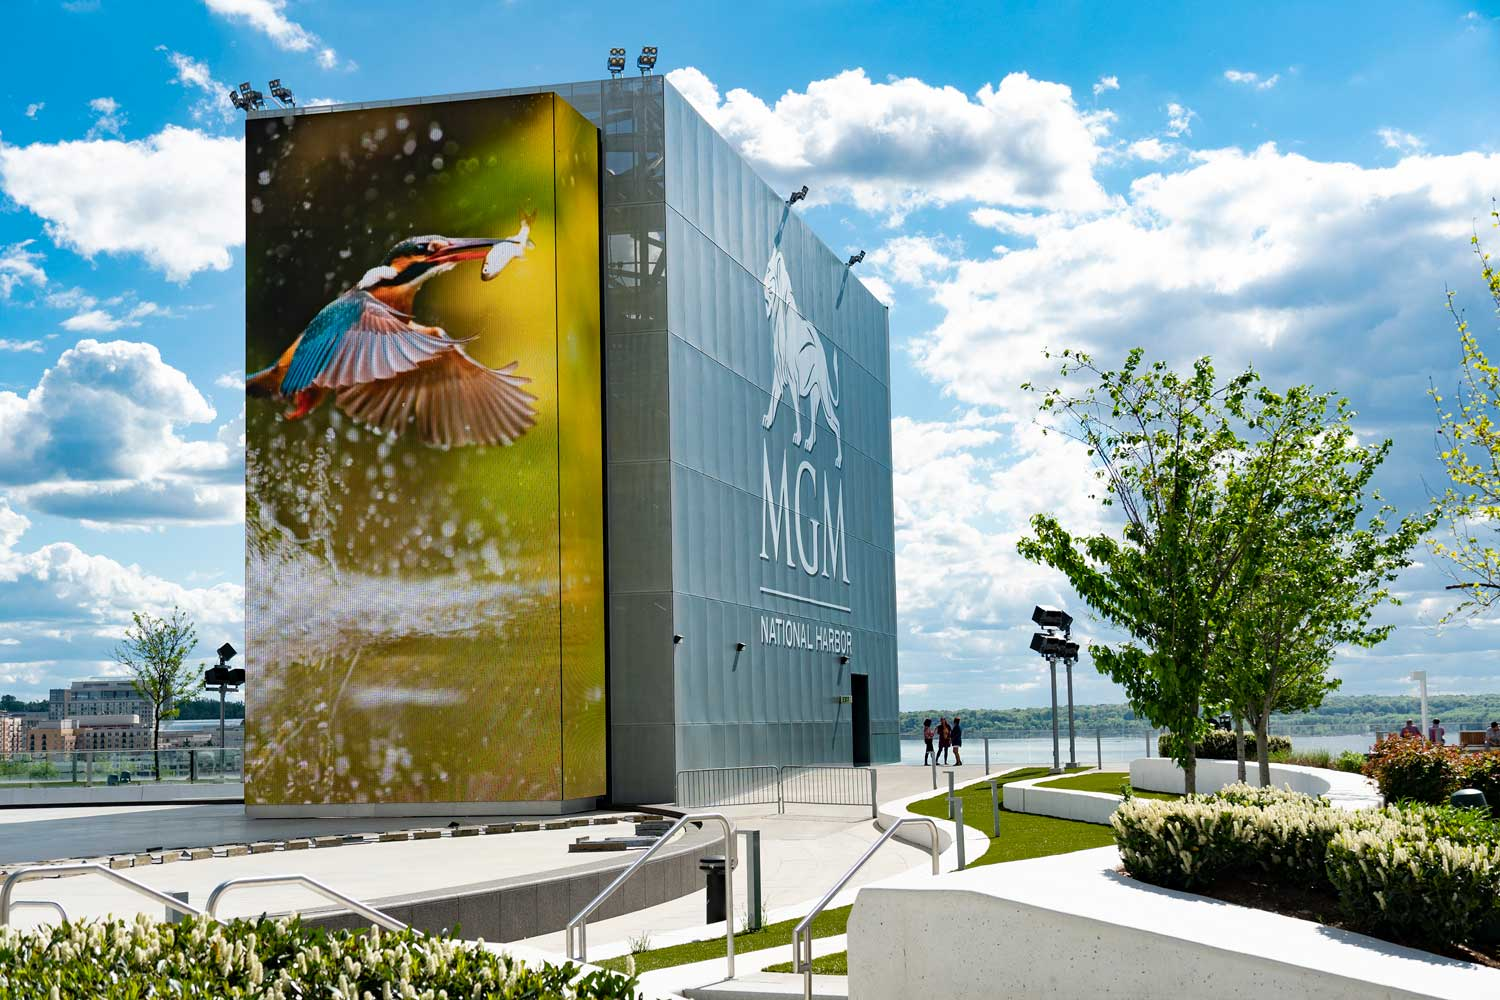 15 minutes to MGM National Harbor Hotel & Casino